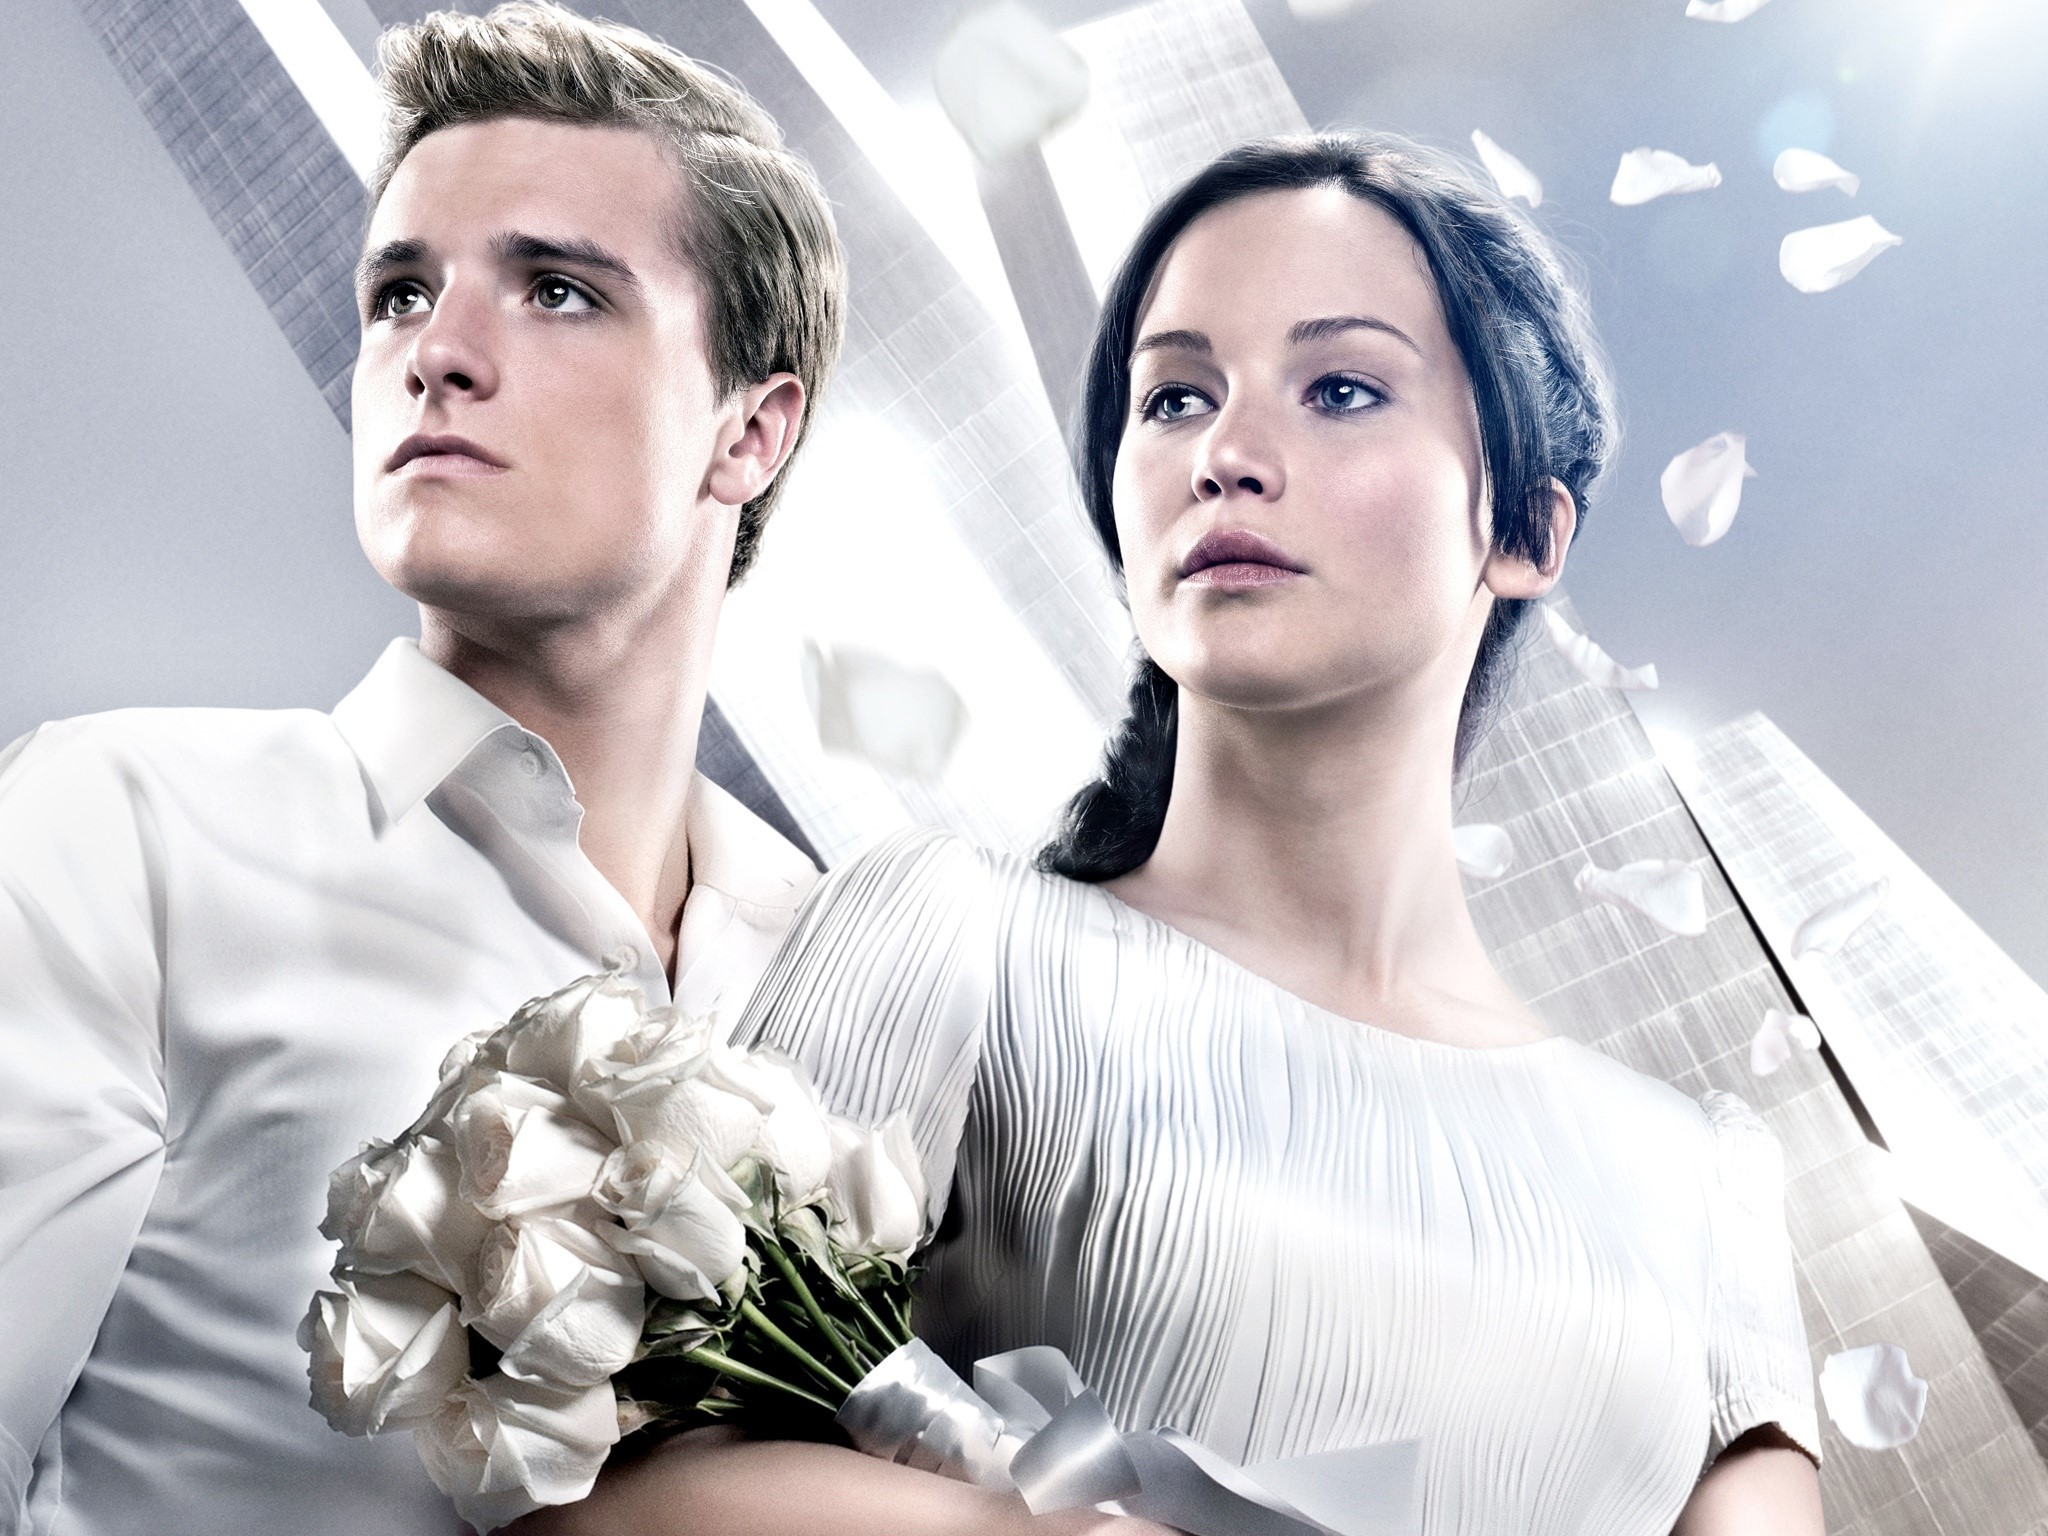 Fondos de pantalla Catching fire